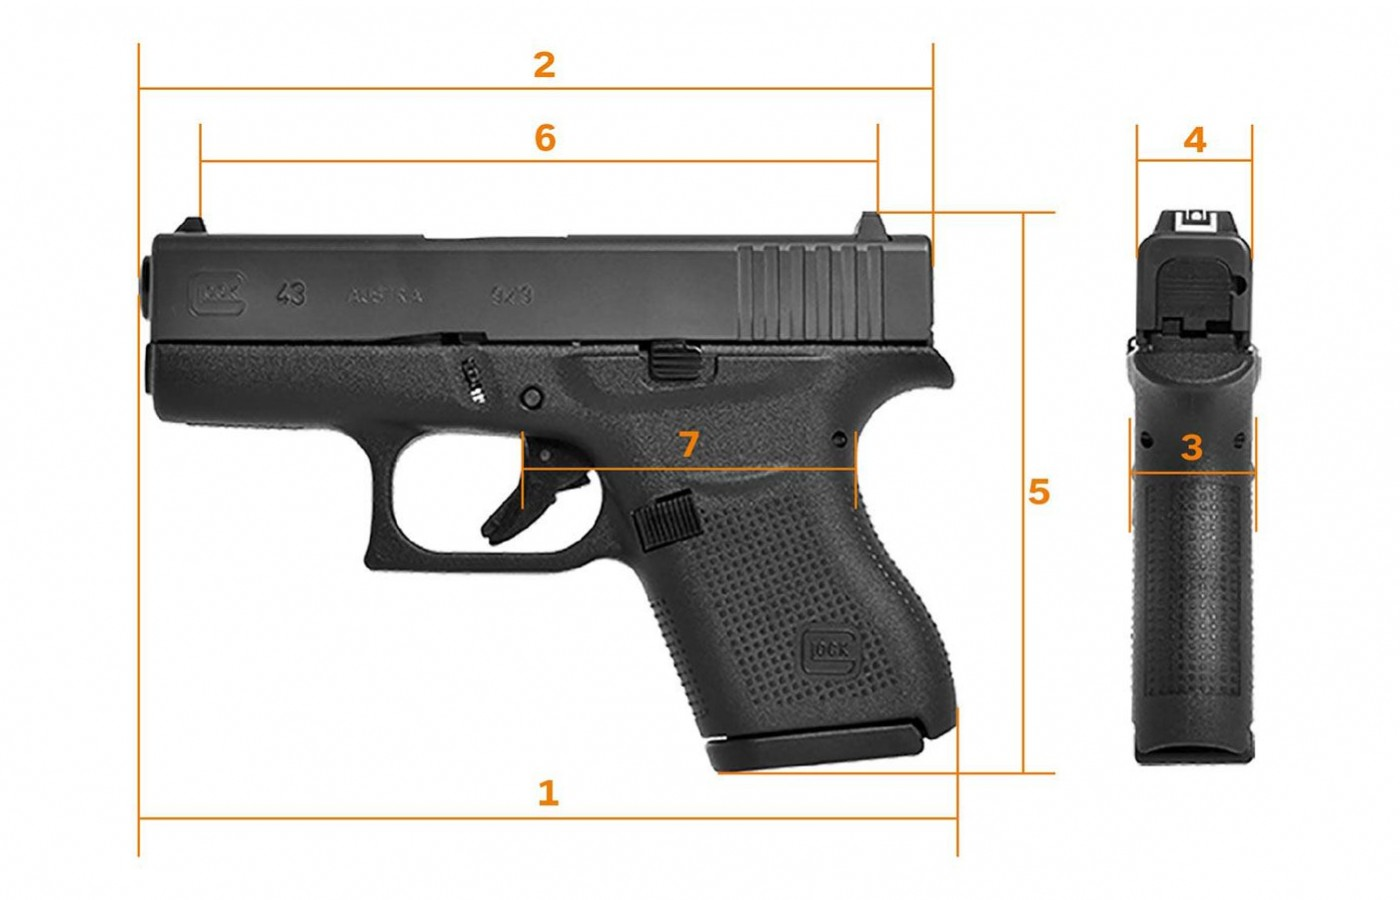 At its widest point, the slide lock, the pistol is 1.02 inches wide.